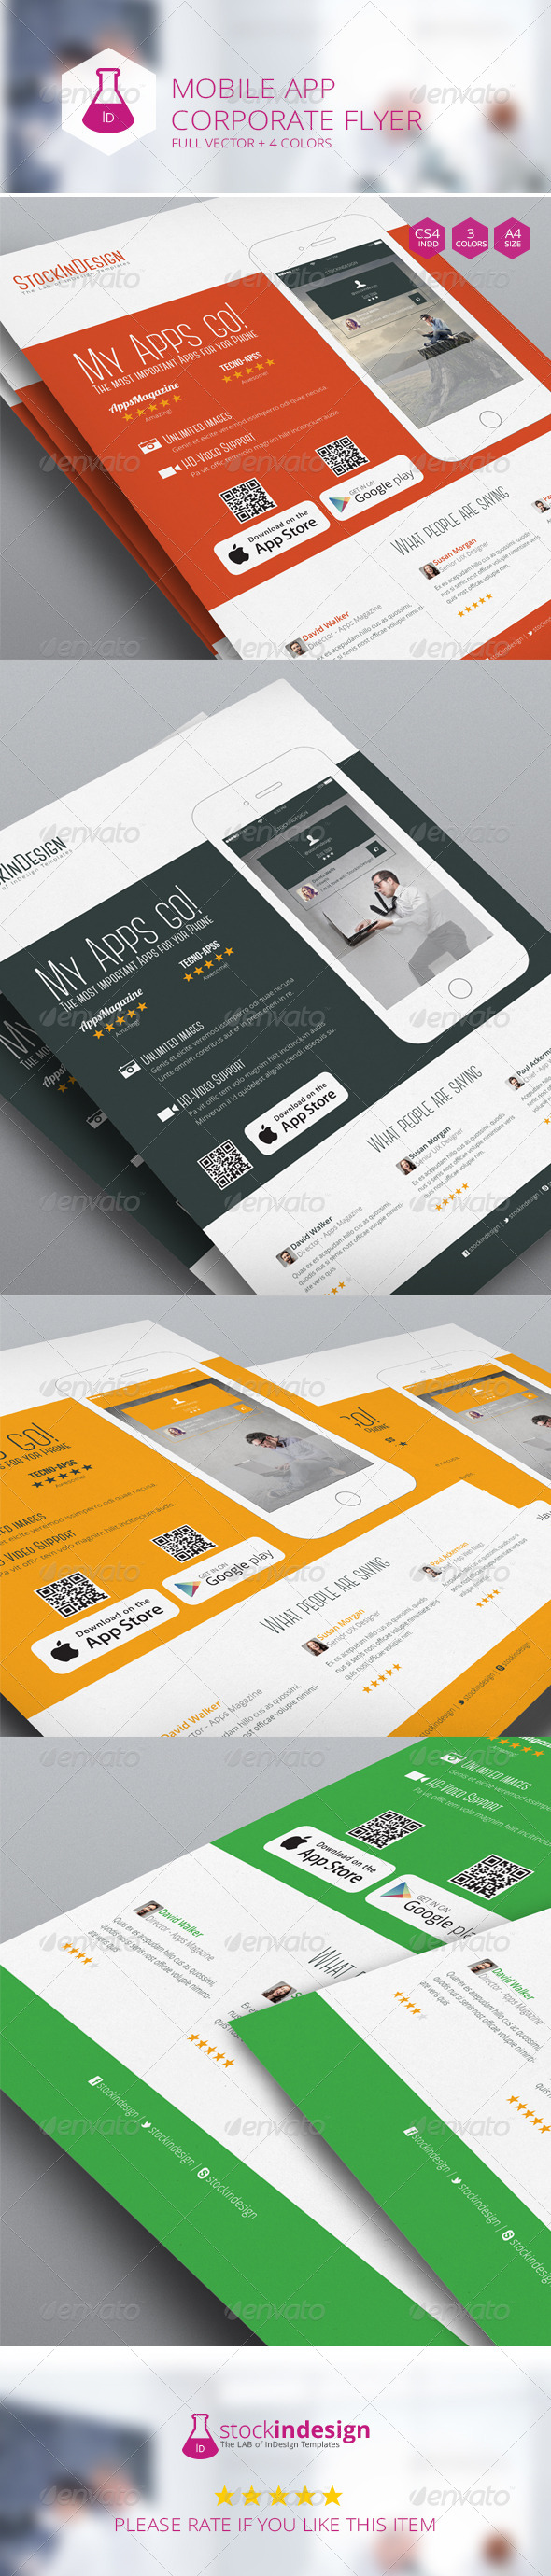 Mobile App Flyer - Flat Design - Corporate Flyers